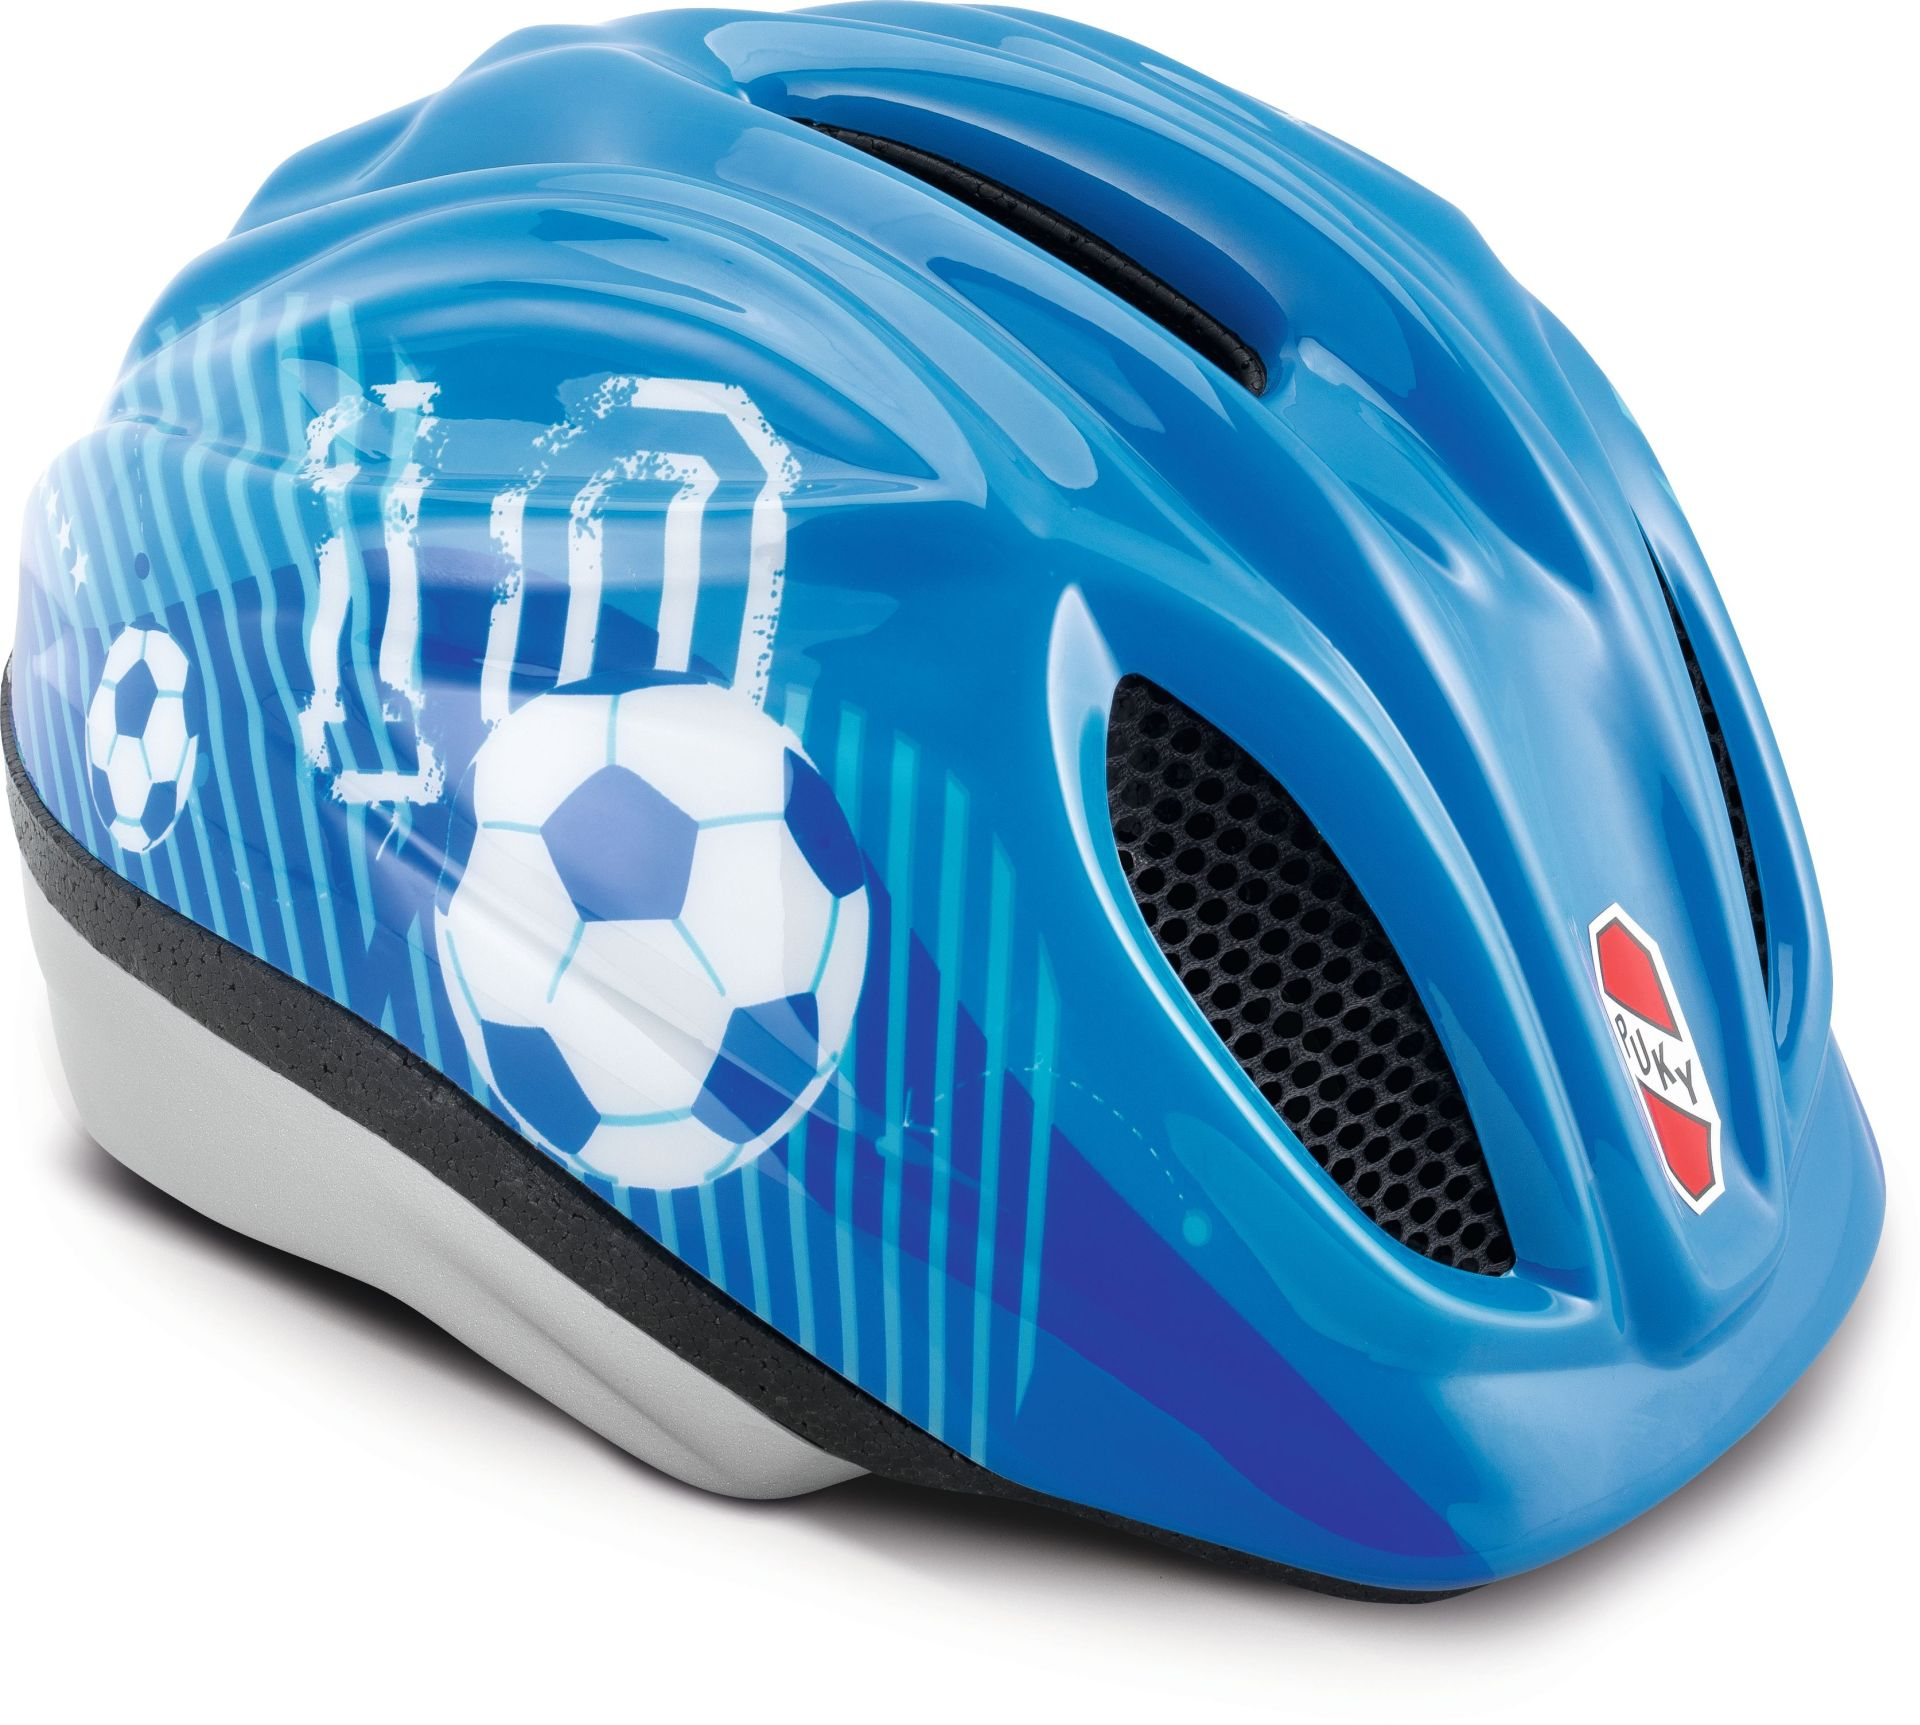 Does a child need a bike helmet